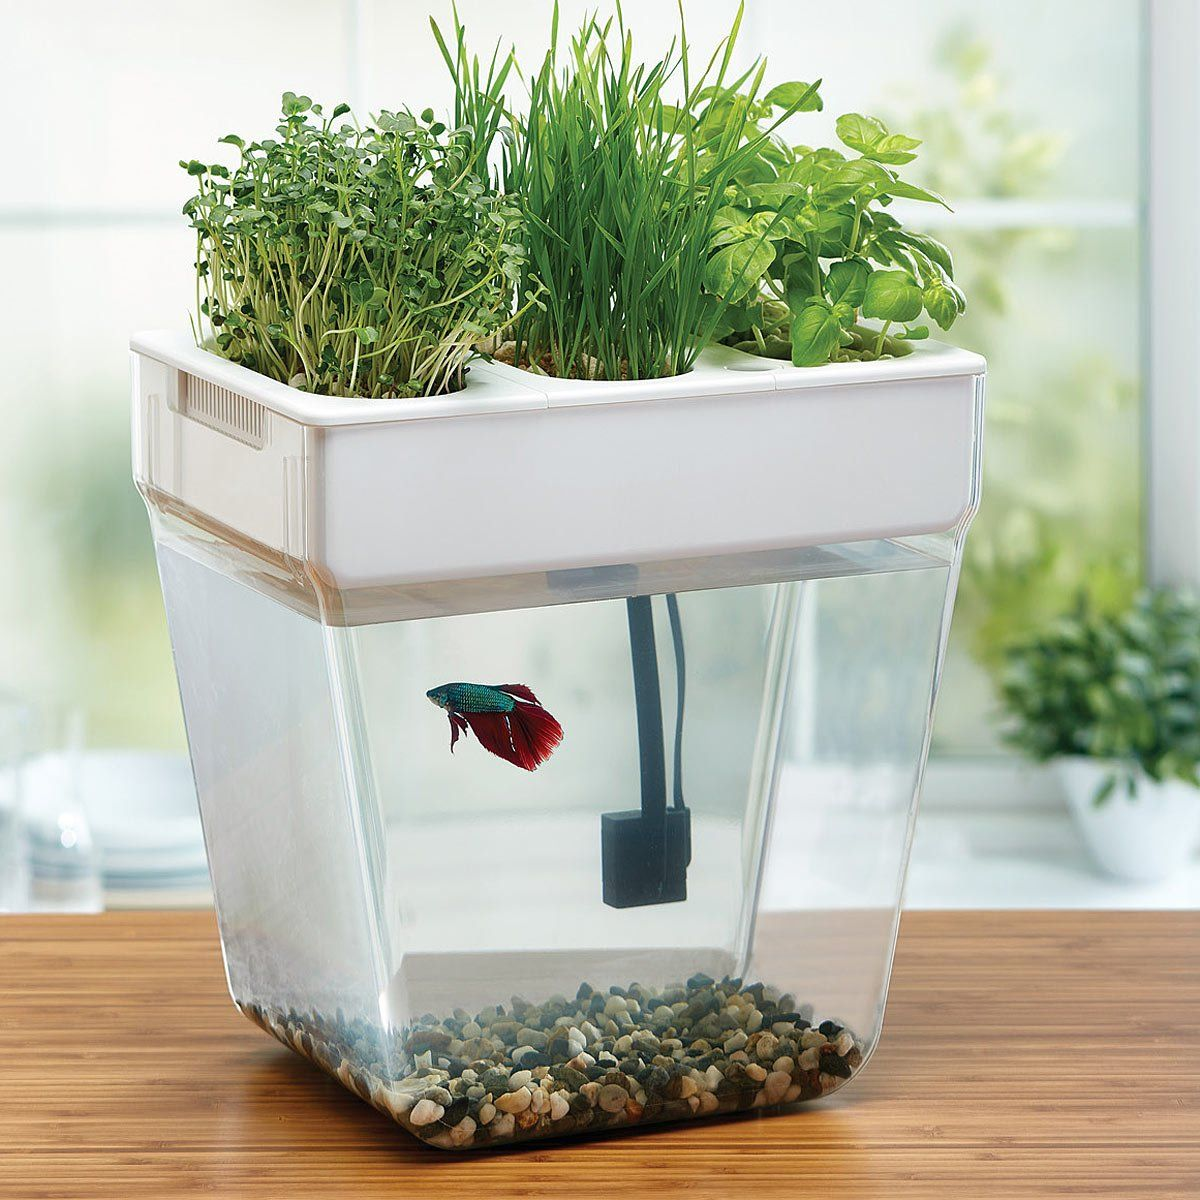 Water Garden Deluxe | Betta fish, Betta and Fish tanks